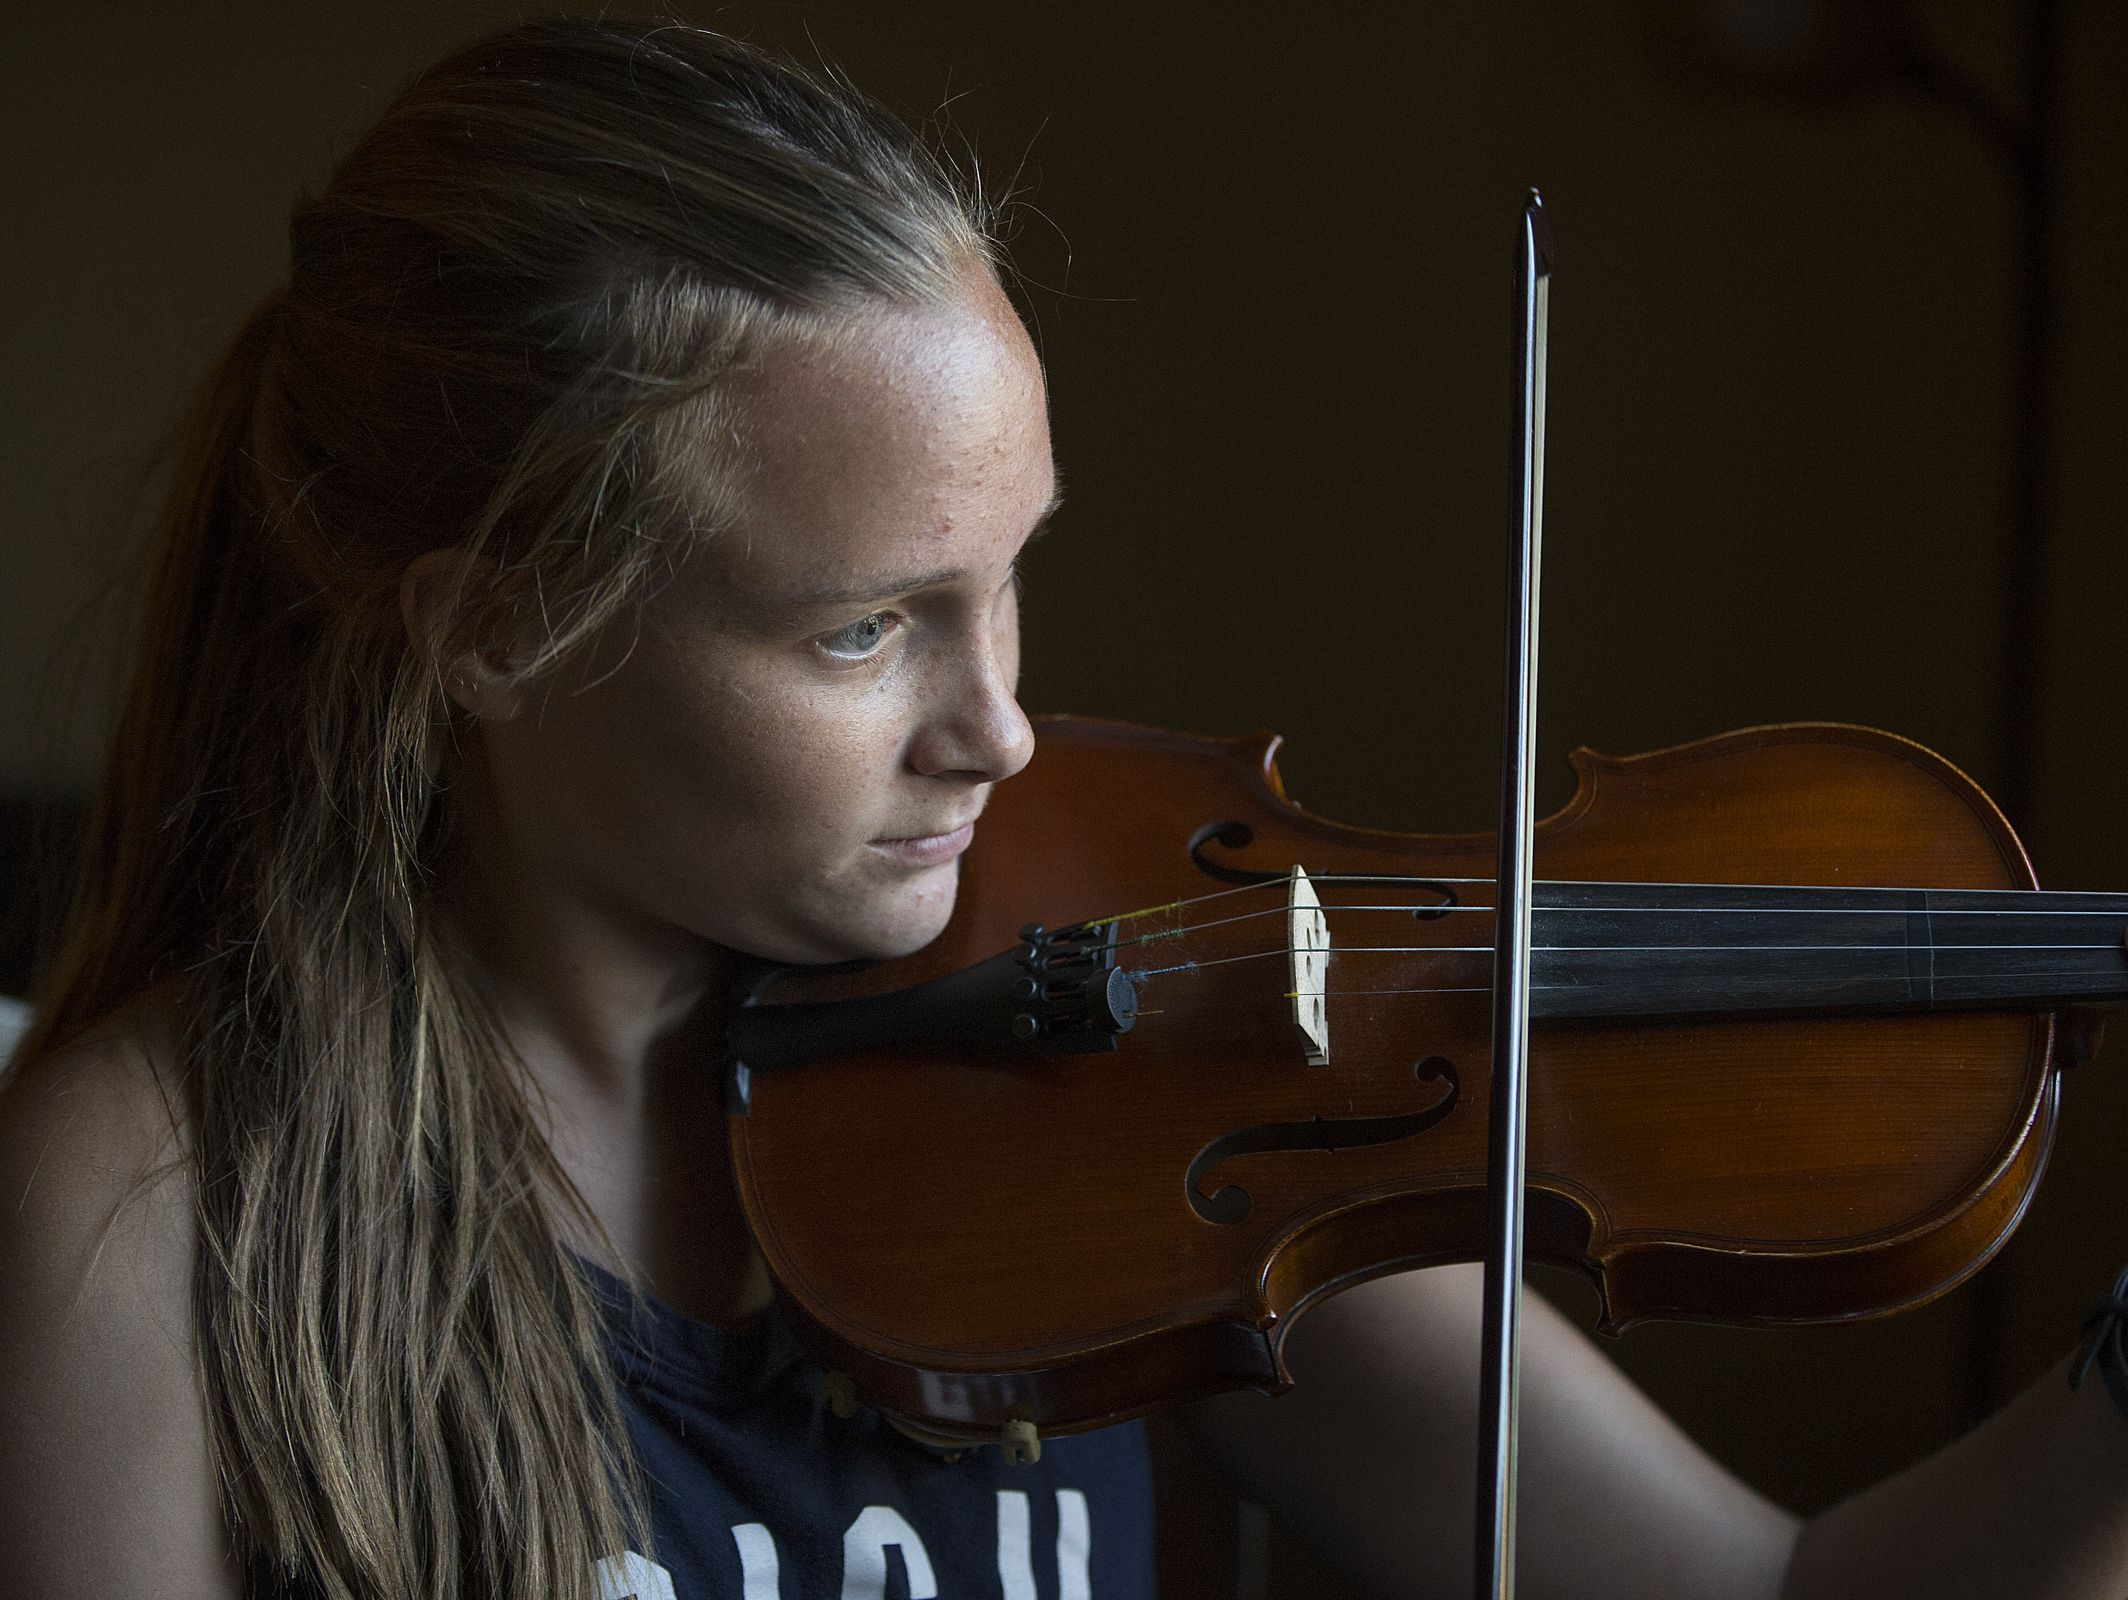 Caroline Kavanaugh plays a song on violin for a portrait at her family's south side home, Tuesday, September 27, 2016. Despite the challenge of living with a brain tumor since her diagnosis in fourth grade, Kavanaugh stays involved in her many passions. The Perry Meridian junior is a member of chamber orchestra, S.R.O. choir, cross country, National Honor Society, Best Buddies Indiana, vice president of Fellowship of Christian Athletes and junior class representative of Perry Meridian key club.